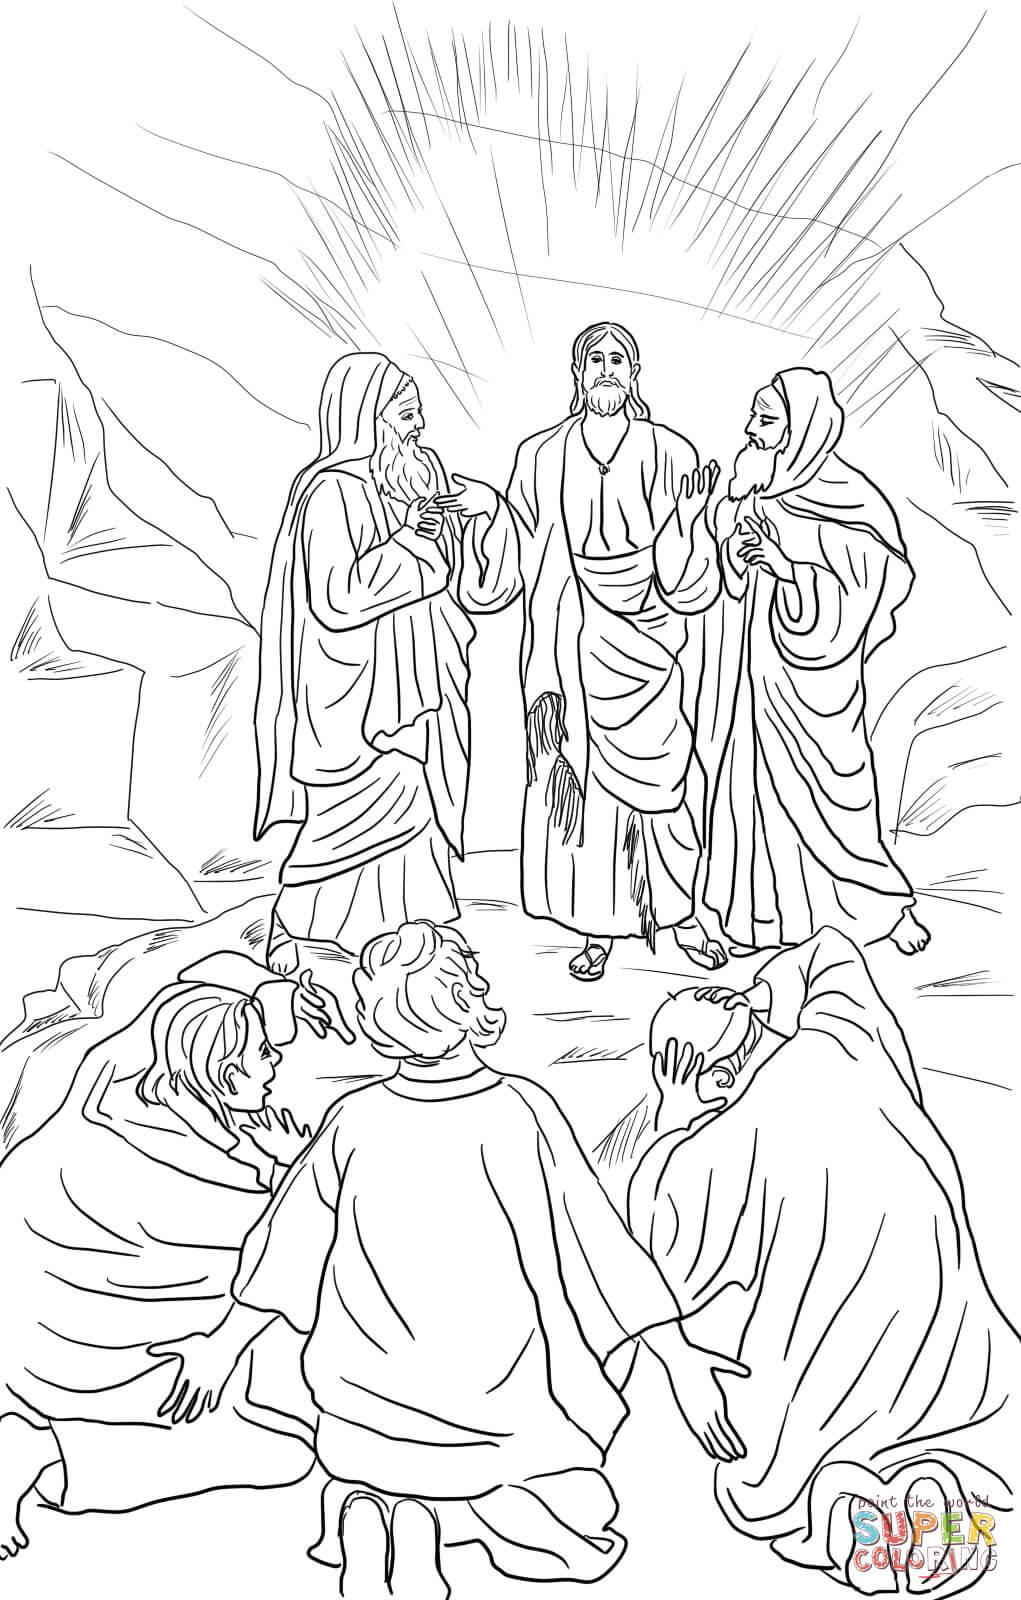 The transfiguration of jesus coloring page